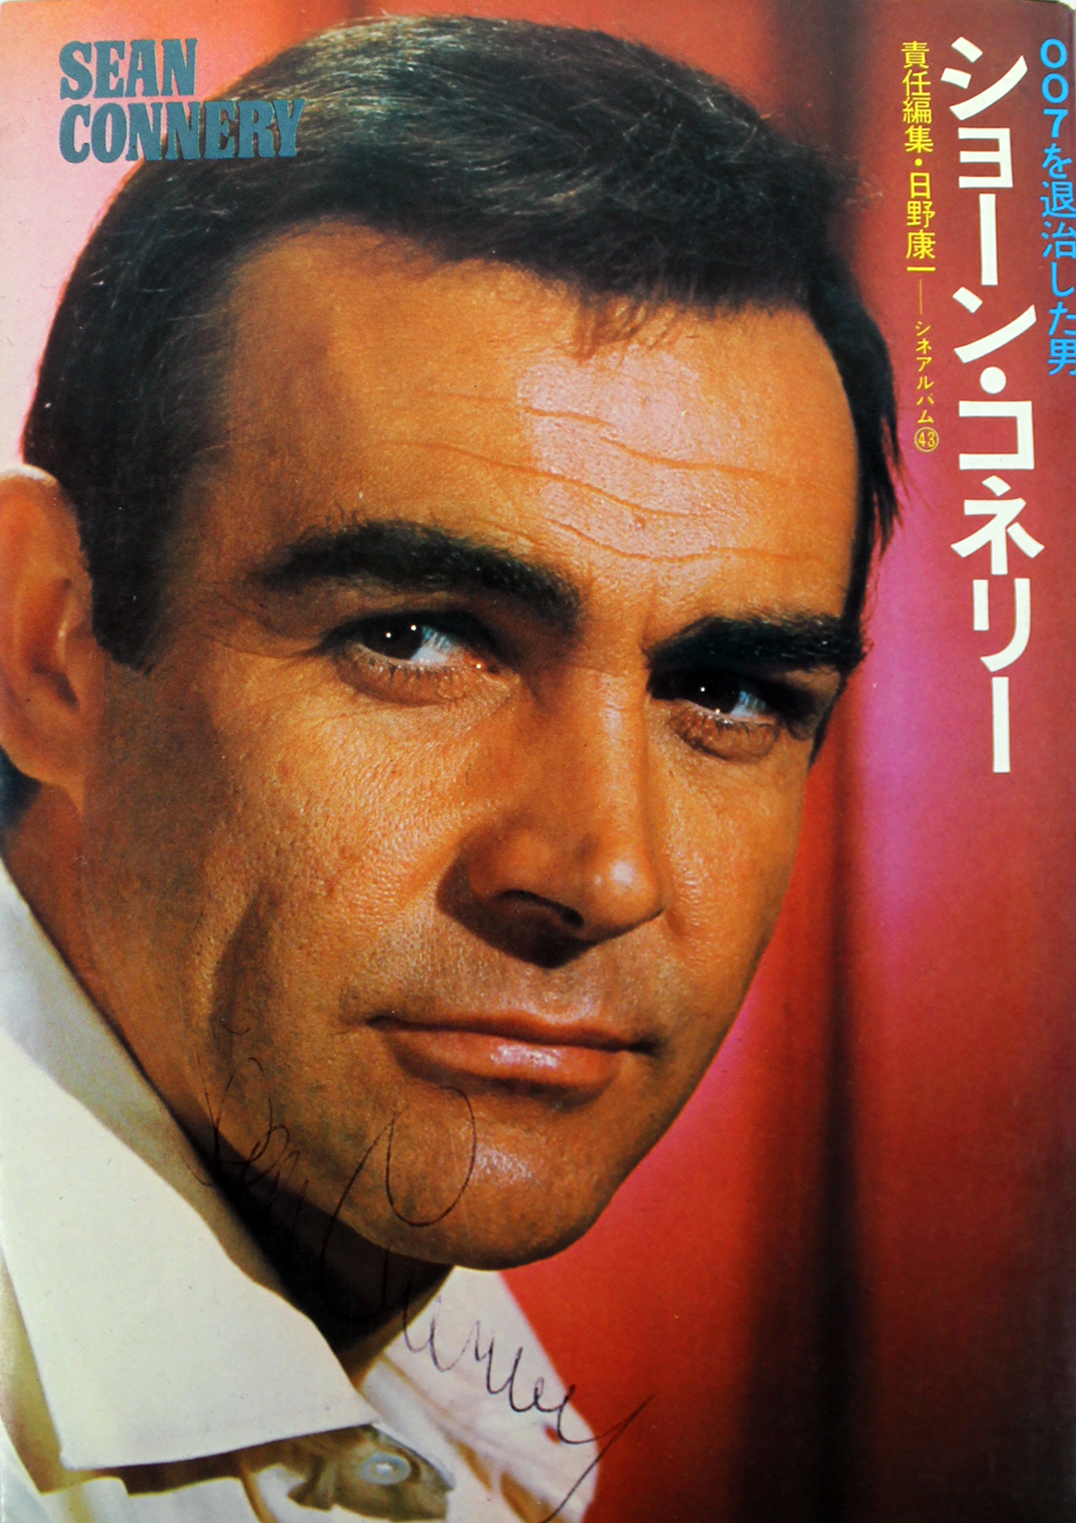 Sean Connery Authentic Signed Vintage Japanese 007 James Bond Book BAS #A86819